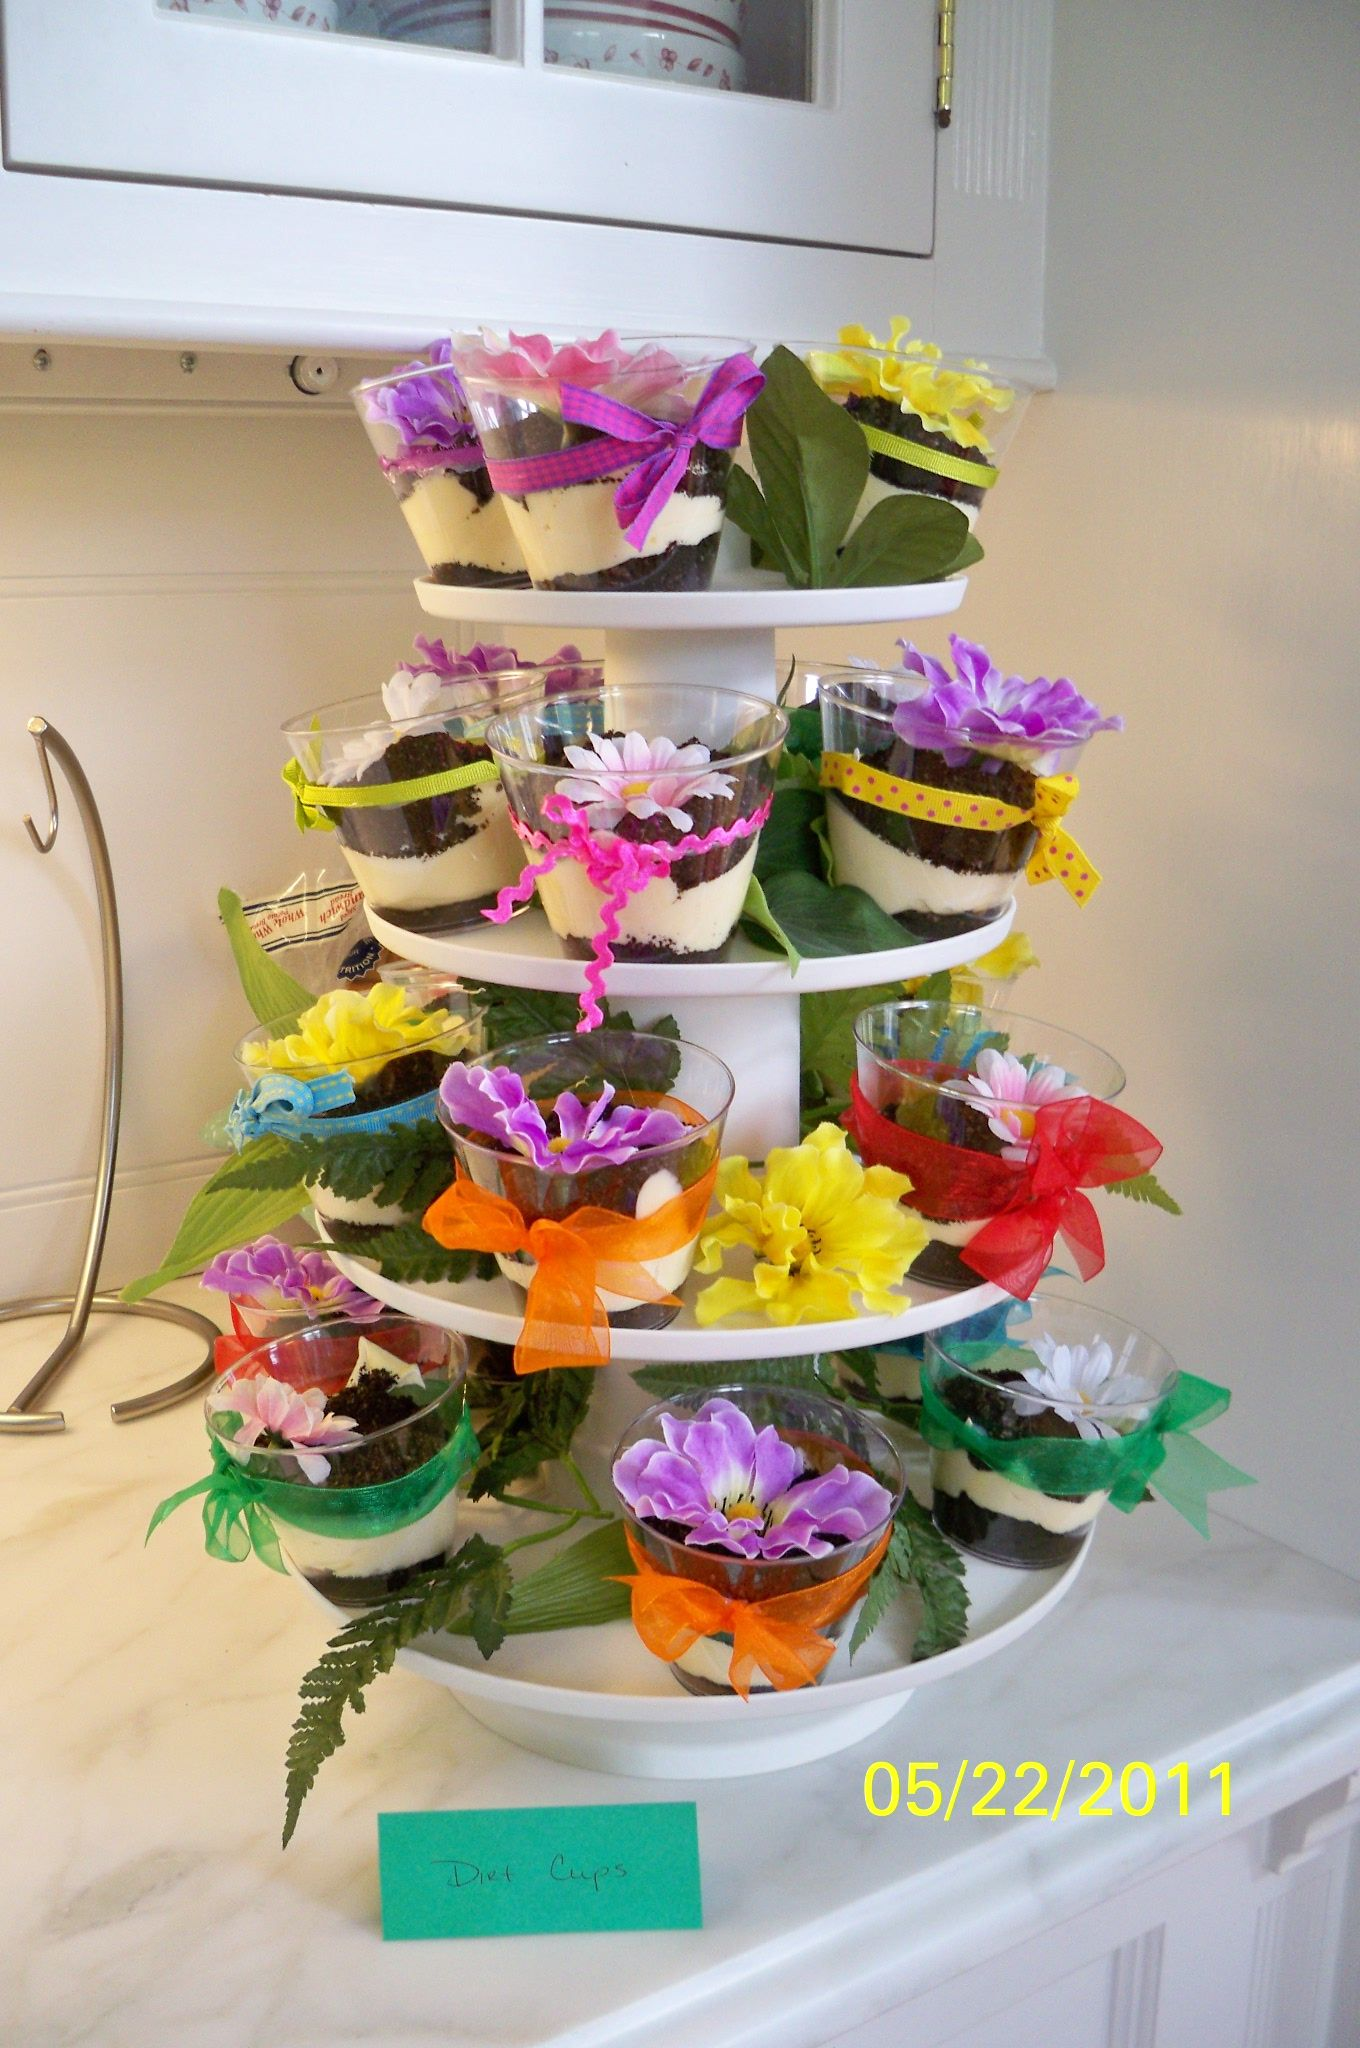 I decorated dirt cups for a gardenthemed spring bridal